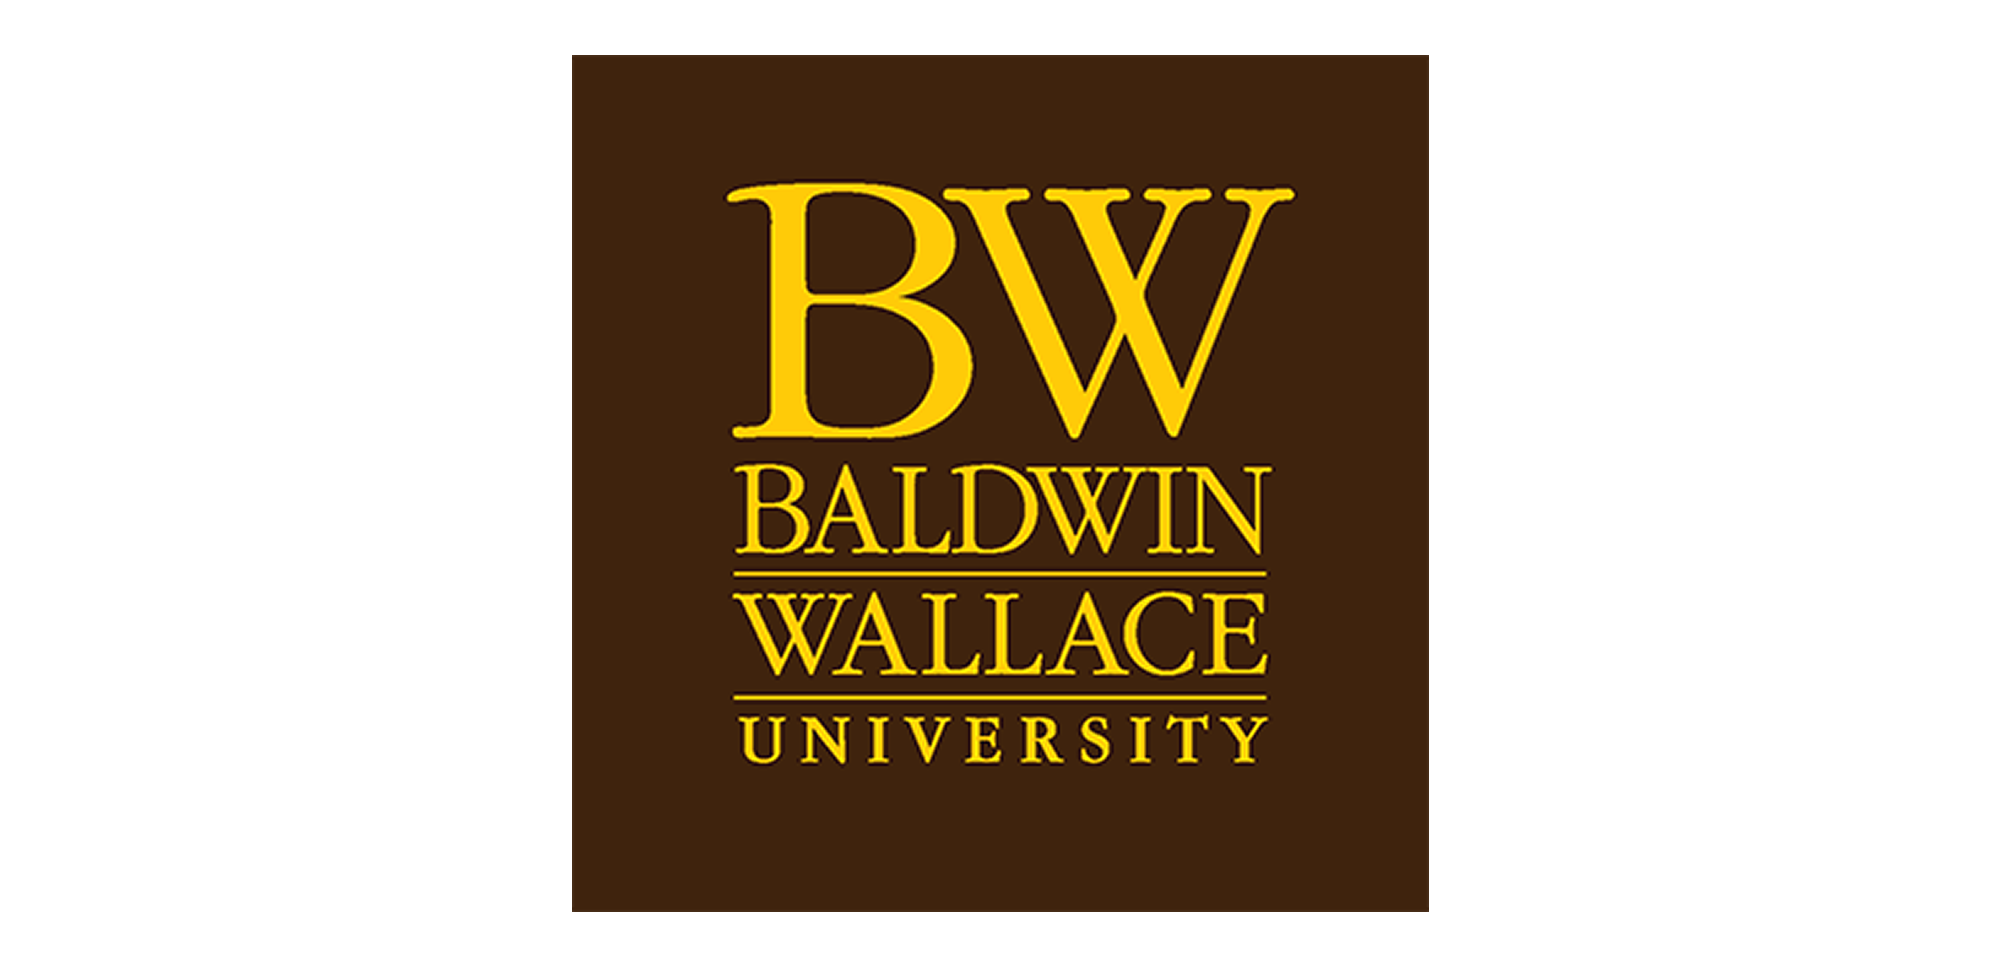 Baldwin-Wallace University